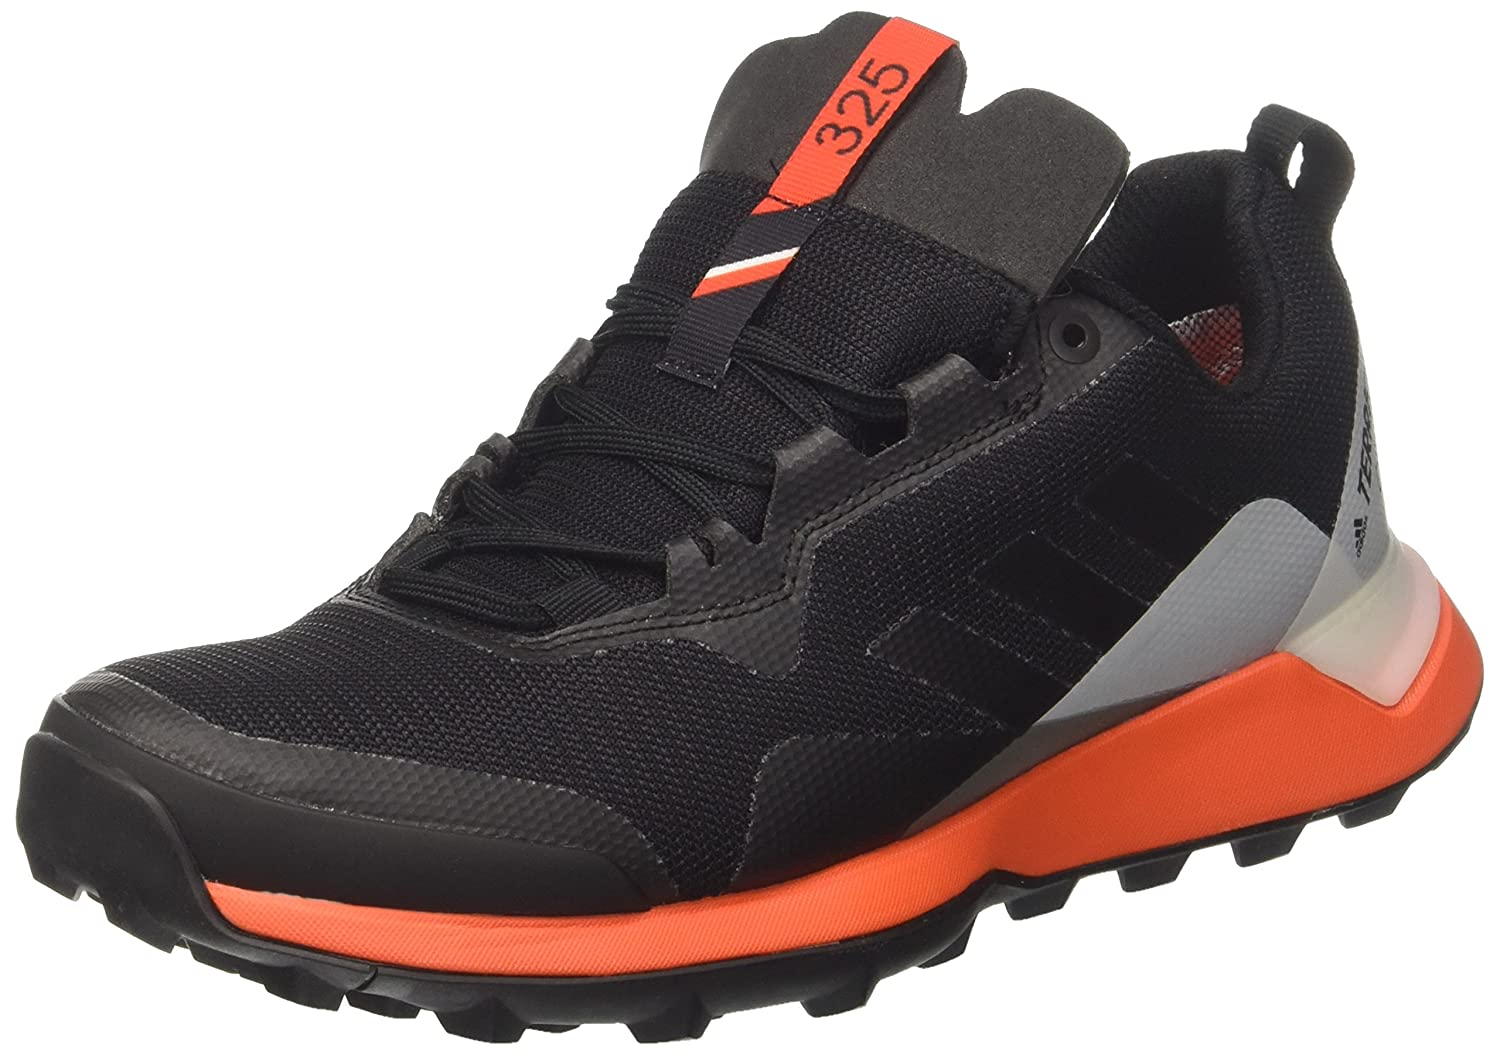 955fe0a85f5eca adidas Men s Terrex CMTK GTX Low Rise Hiking Boots  Amazon.co.uk  Shoes    Bags